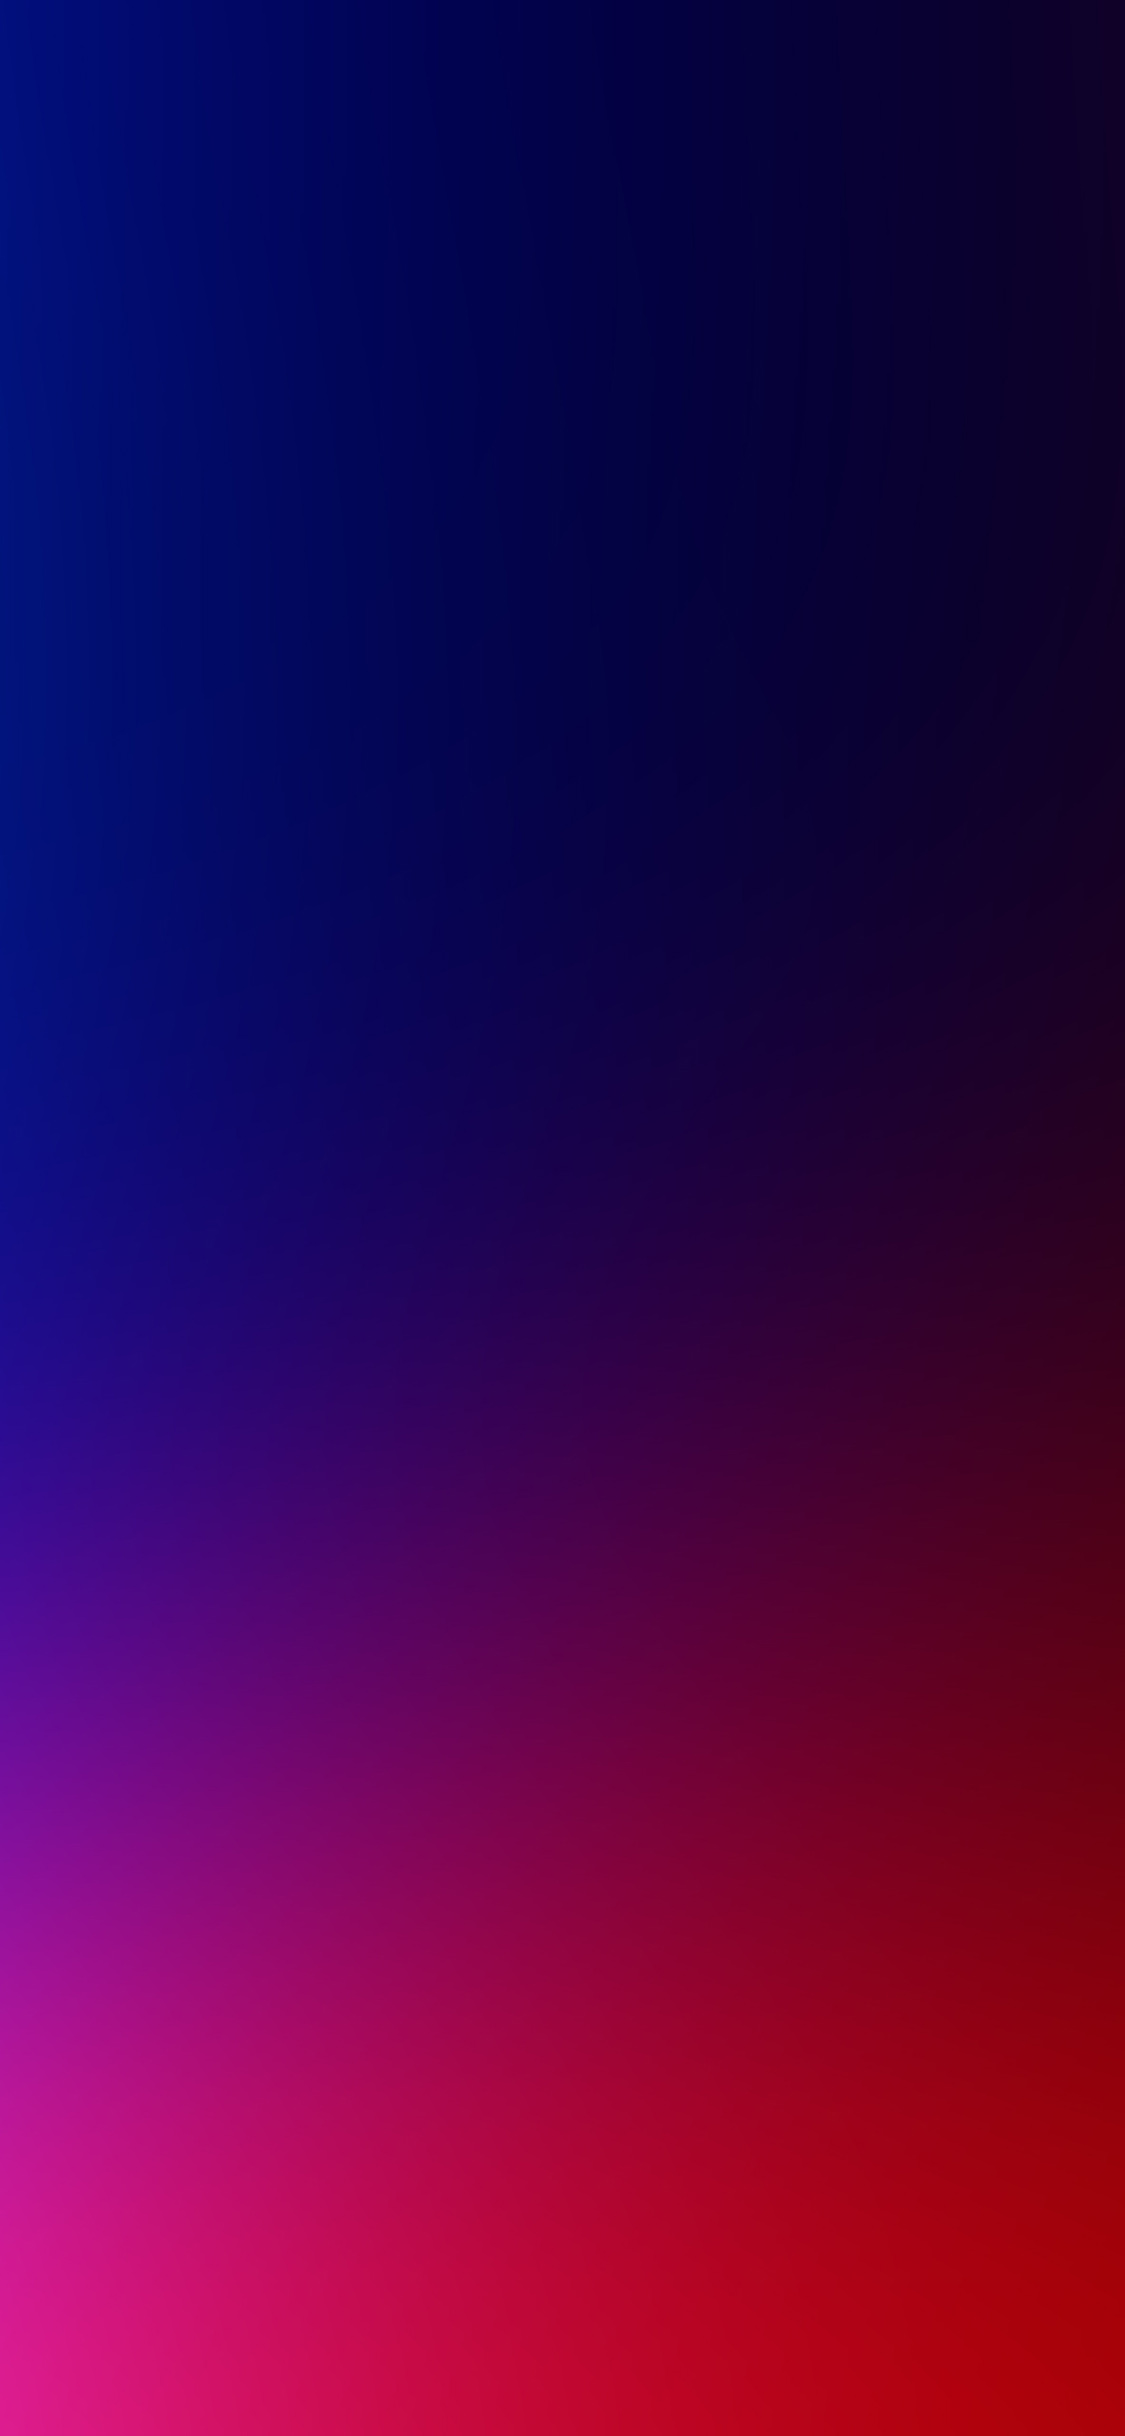 iPhoneXpapers.com-Apple-iPhone-wallpaper-sj06-blue-red-blur-night